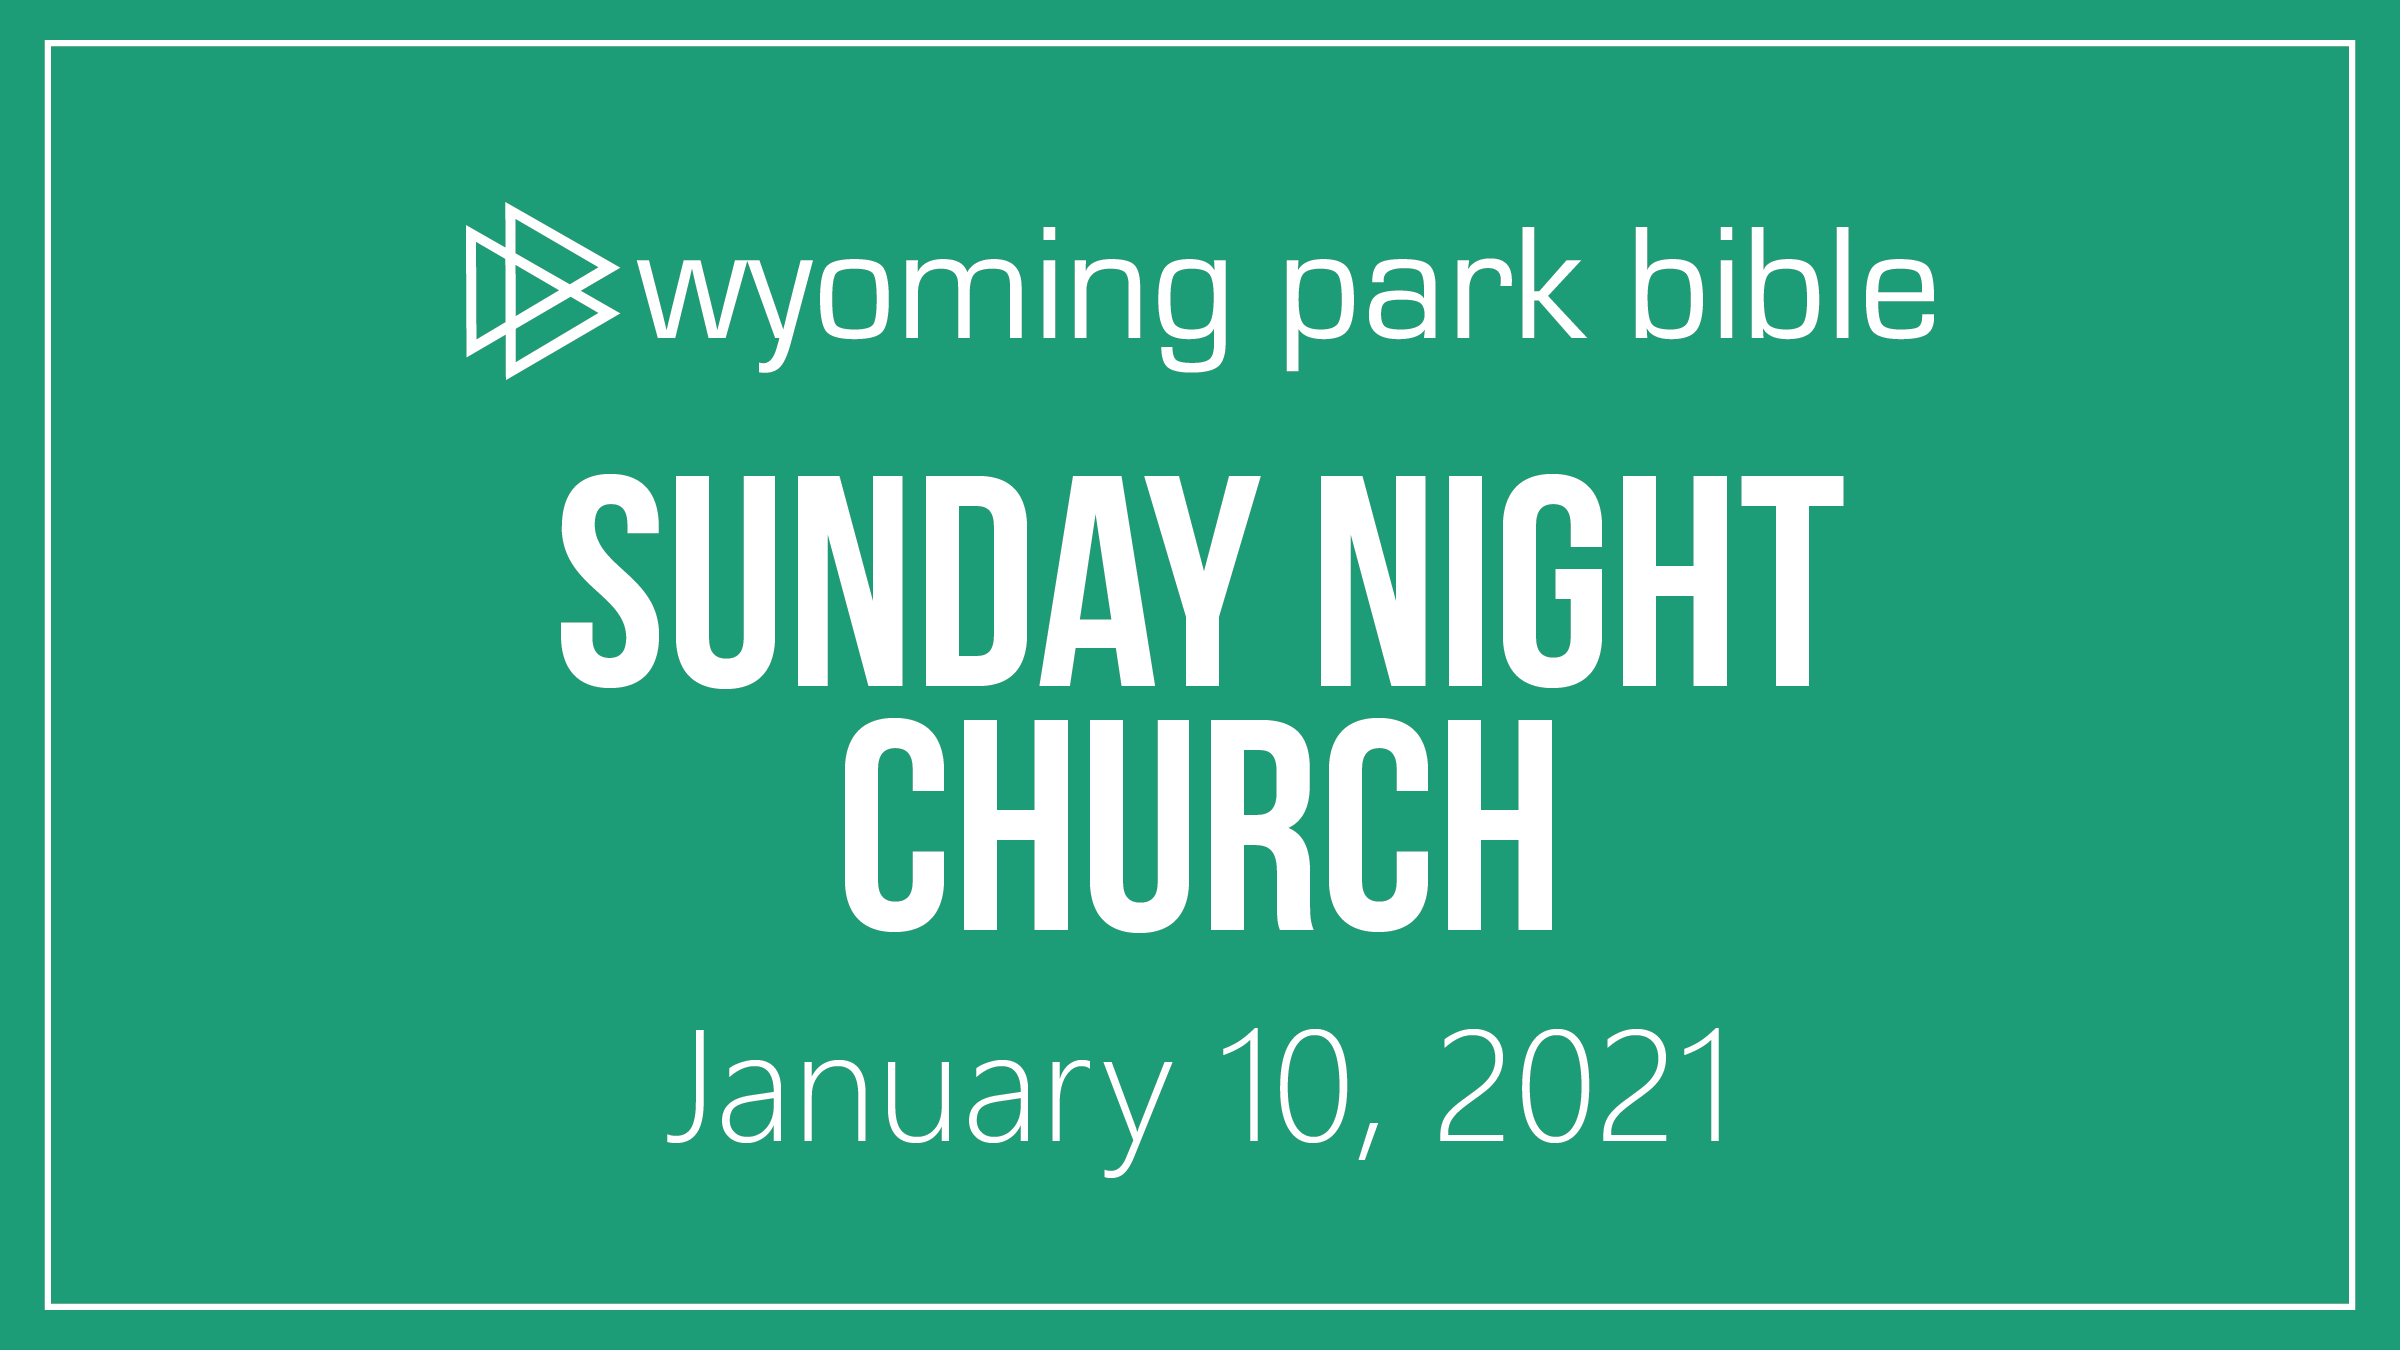 January 10, 2021 Sunday Night Church